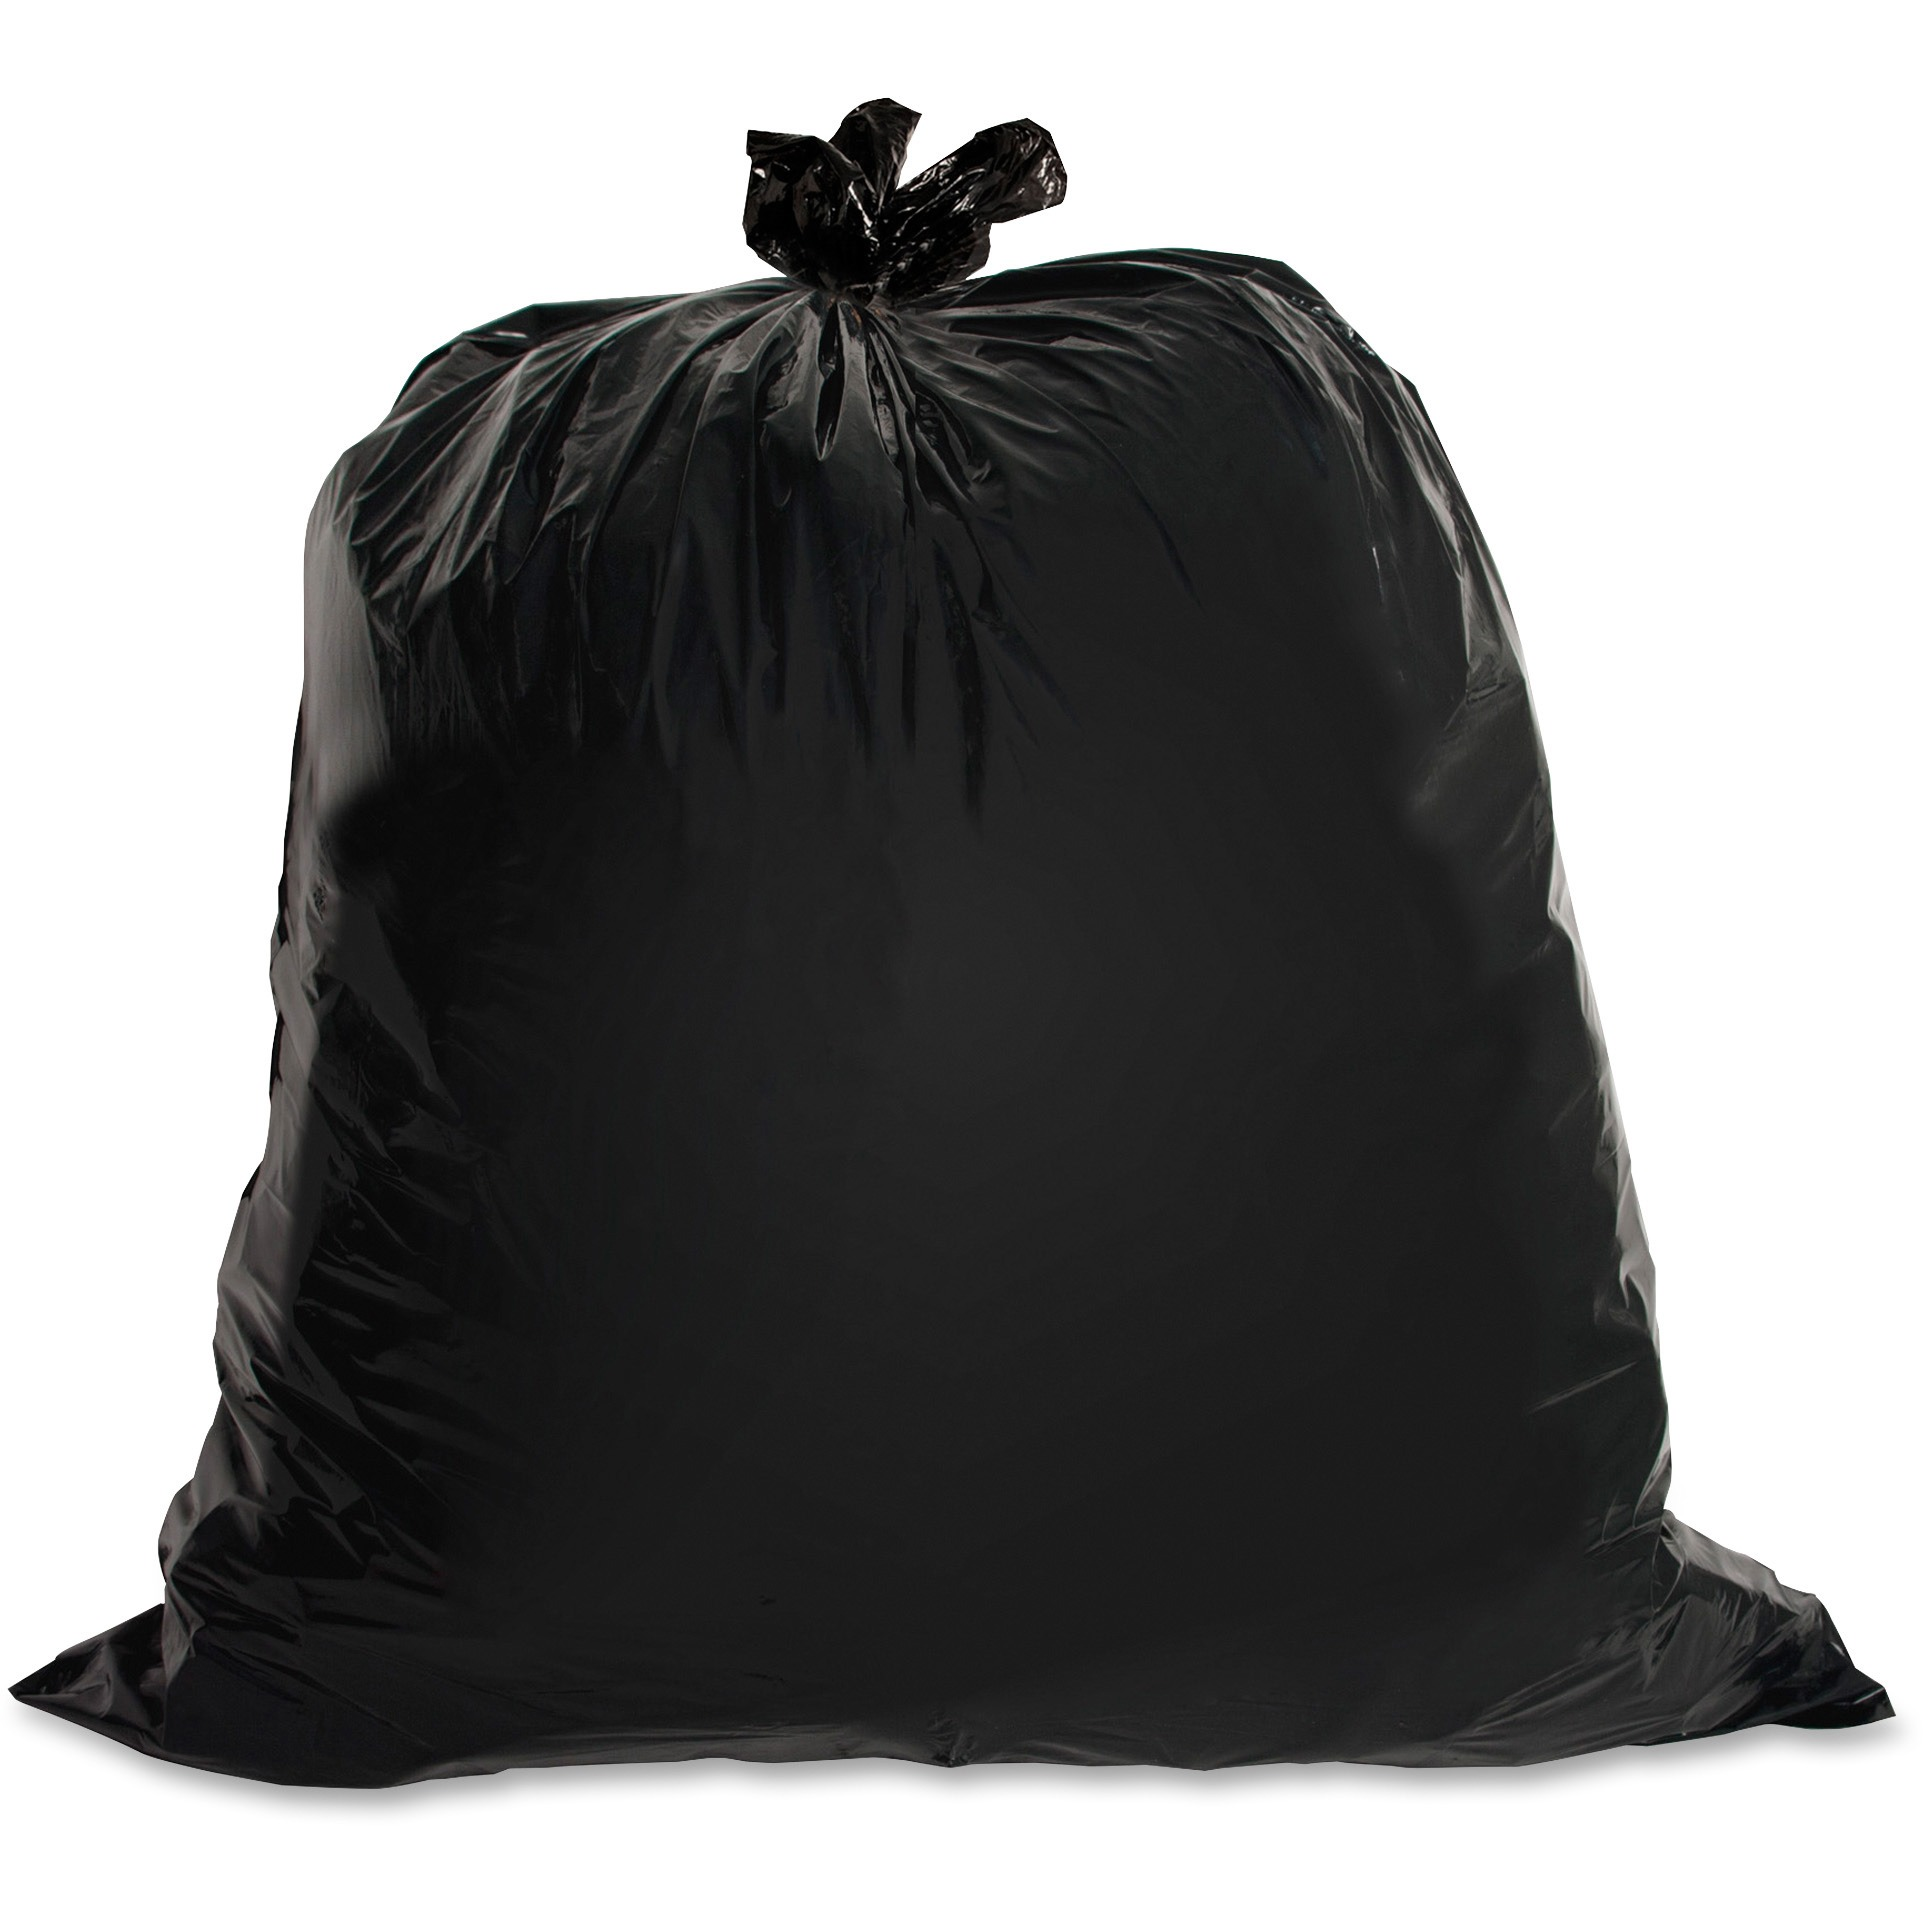 Genuine Joe, GJO01534, Heavy-Duty Trash Can Liners, 50 / Box, Black